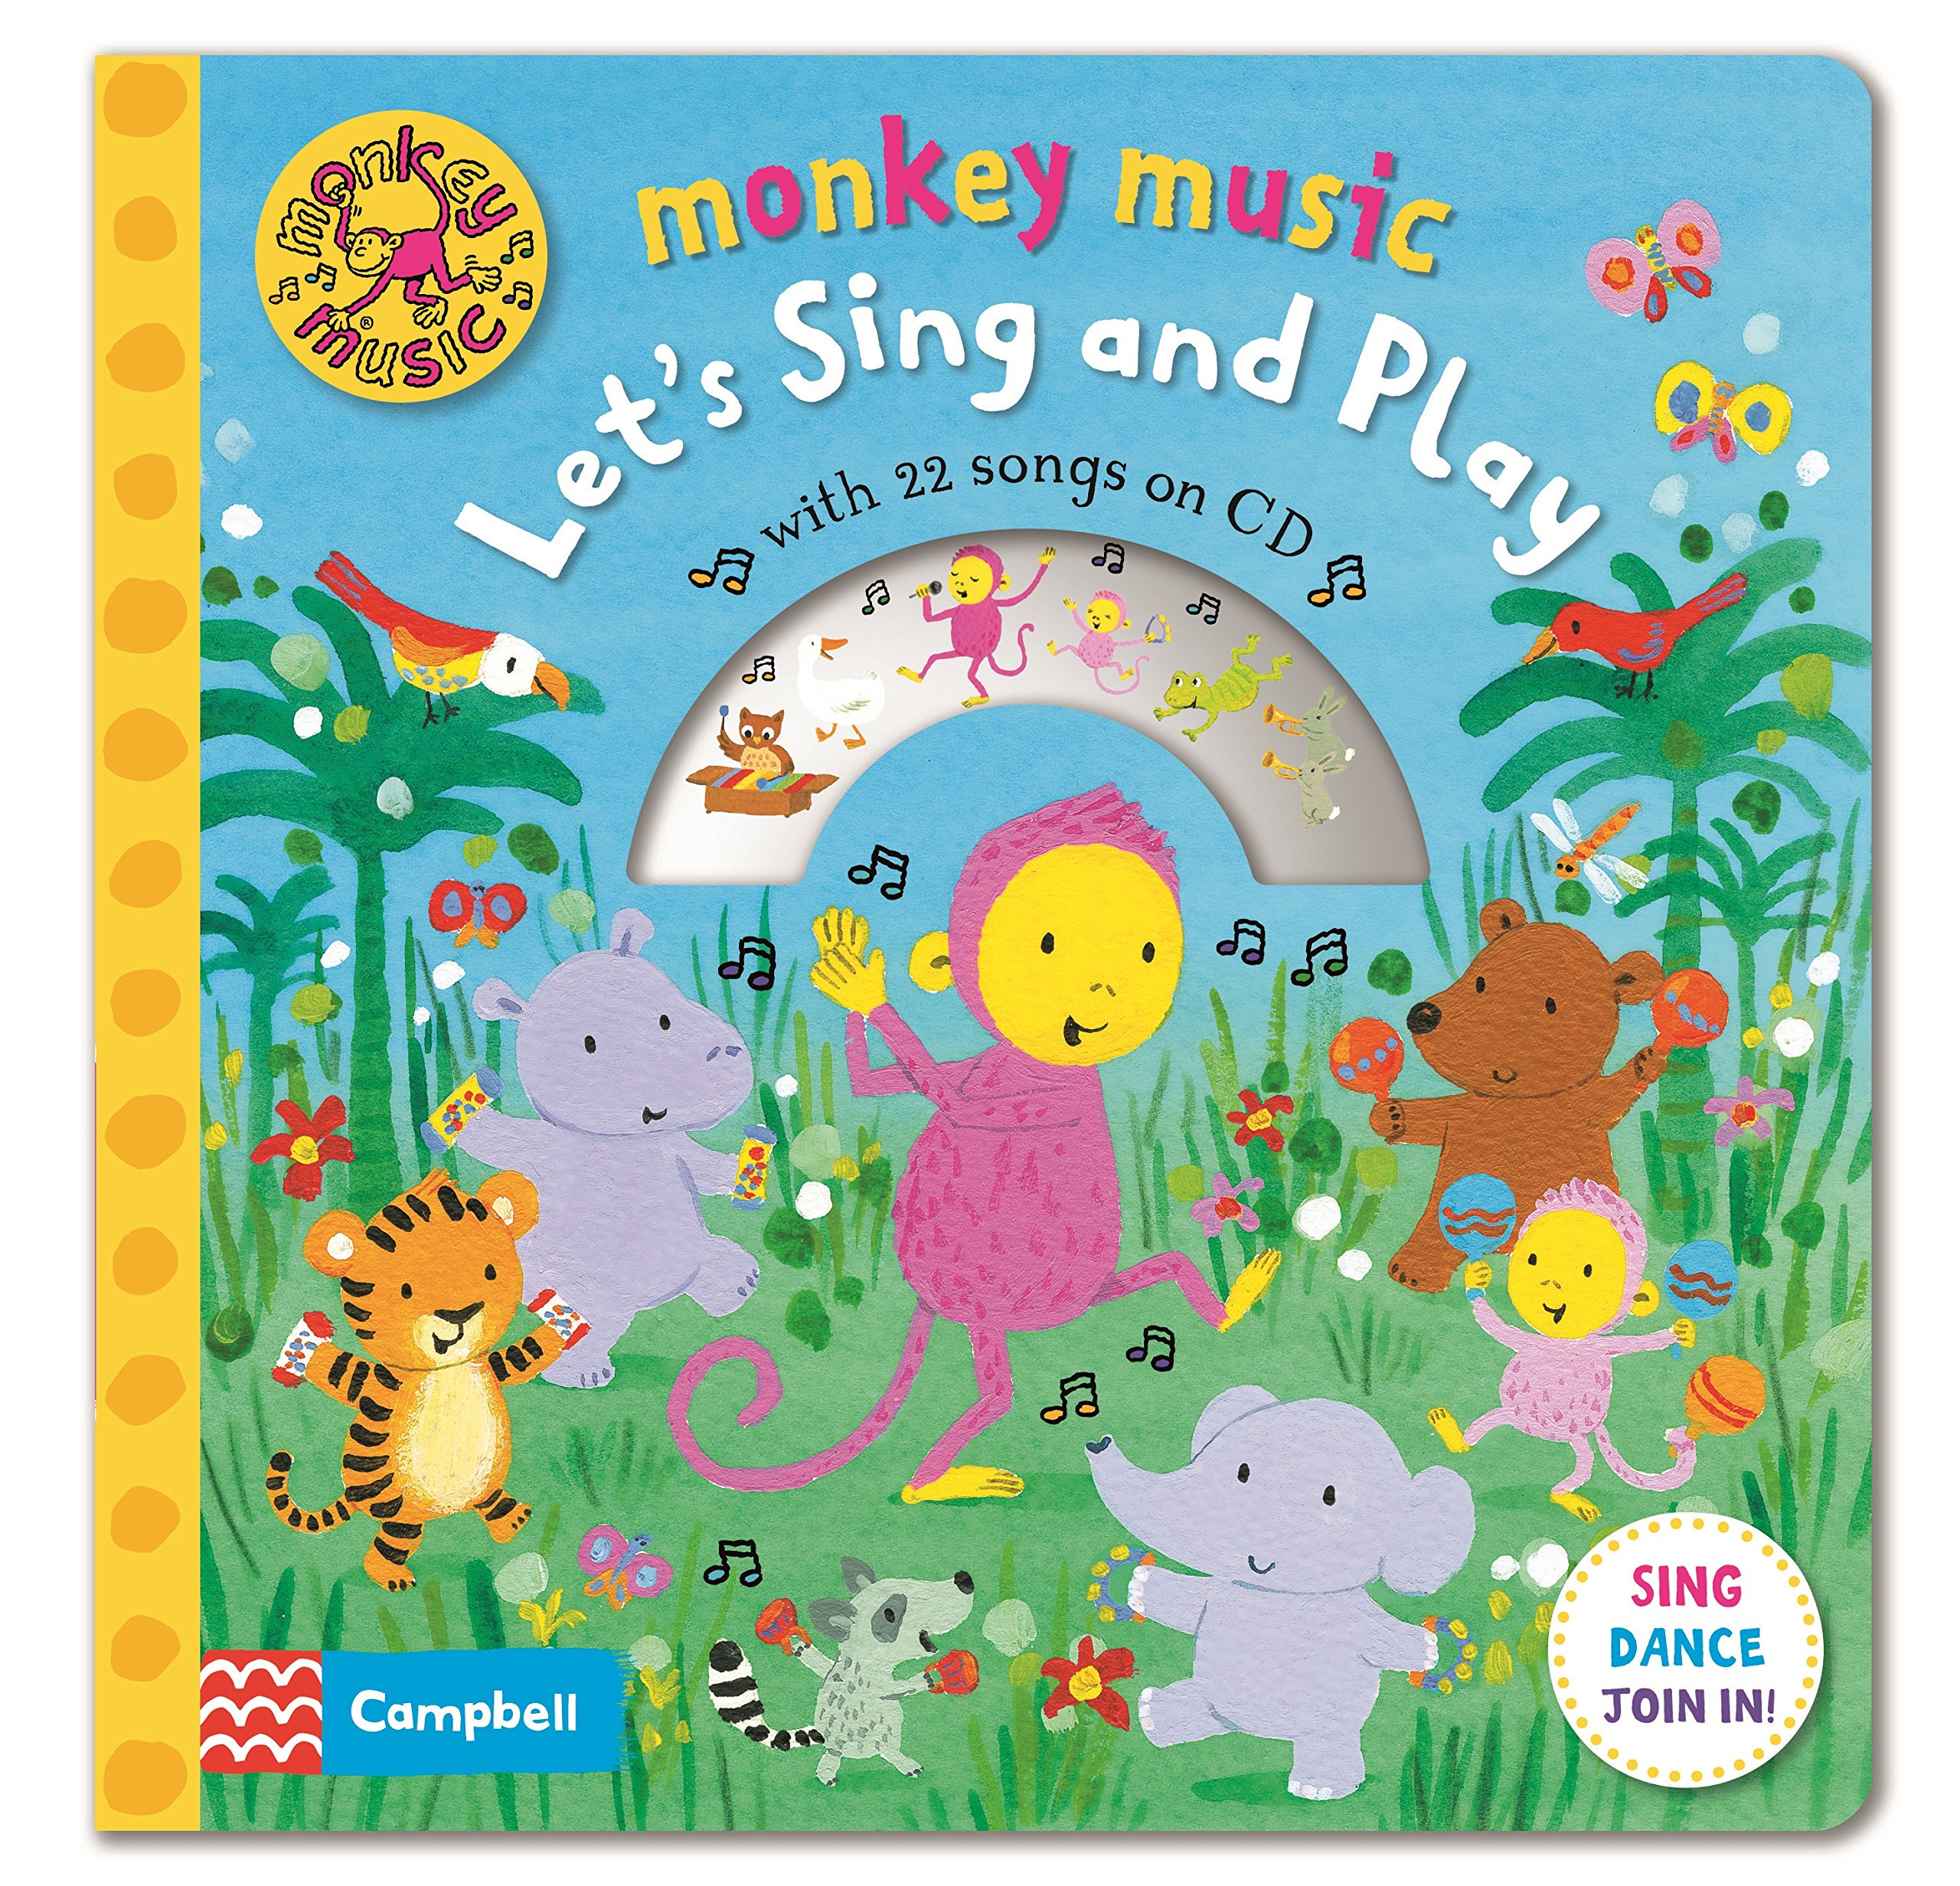 Monkey Music Let's Sing and Play rdr cd [young] granny fixit and the monkey